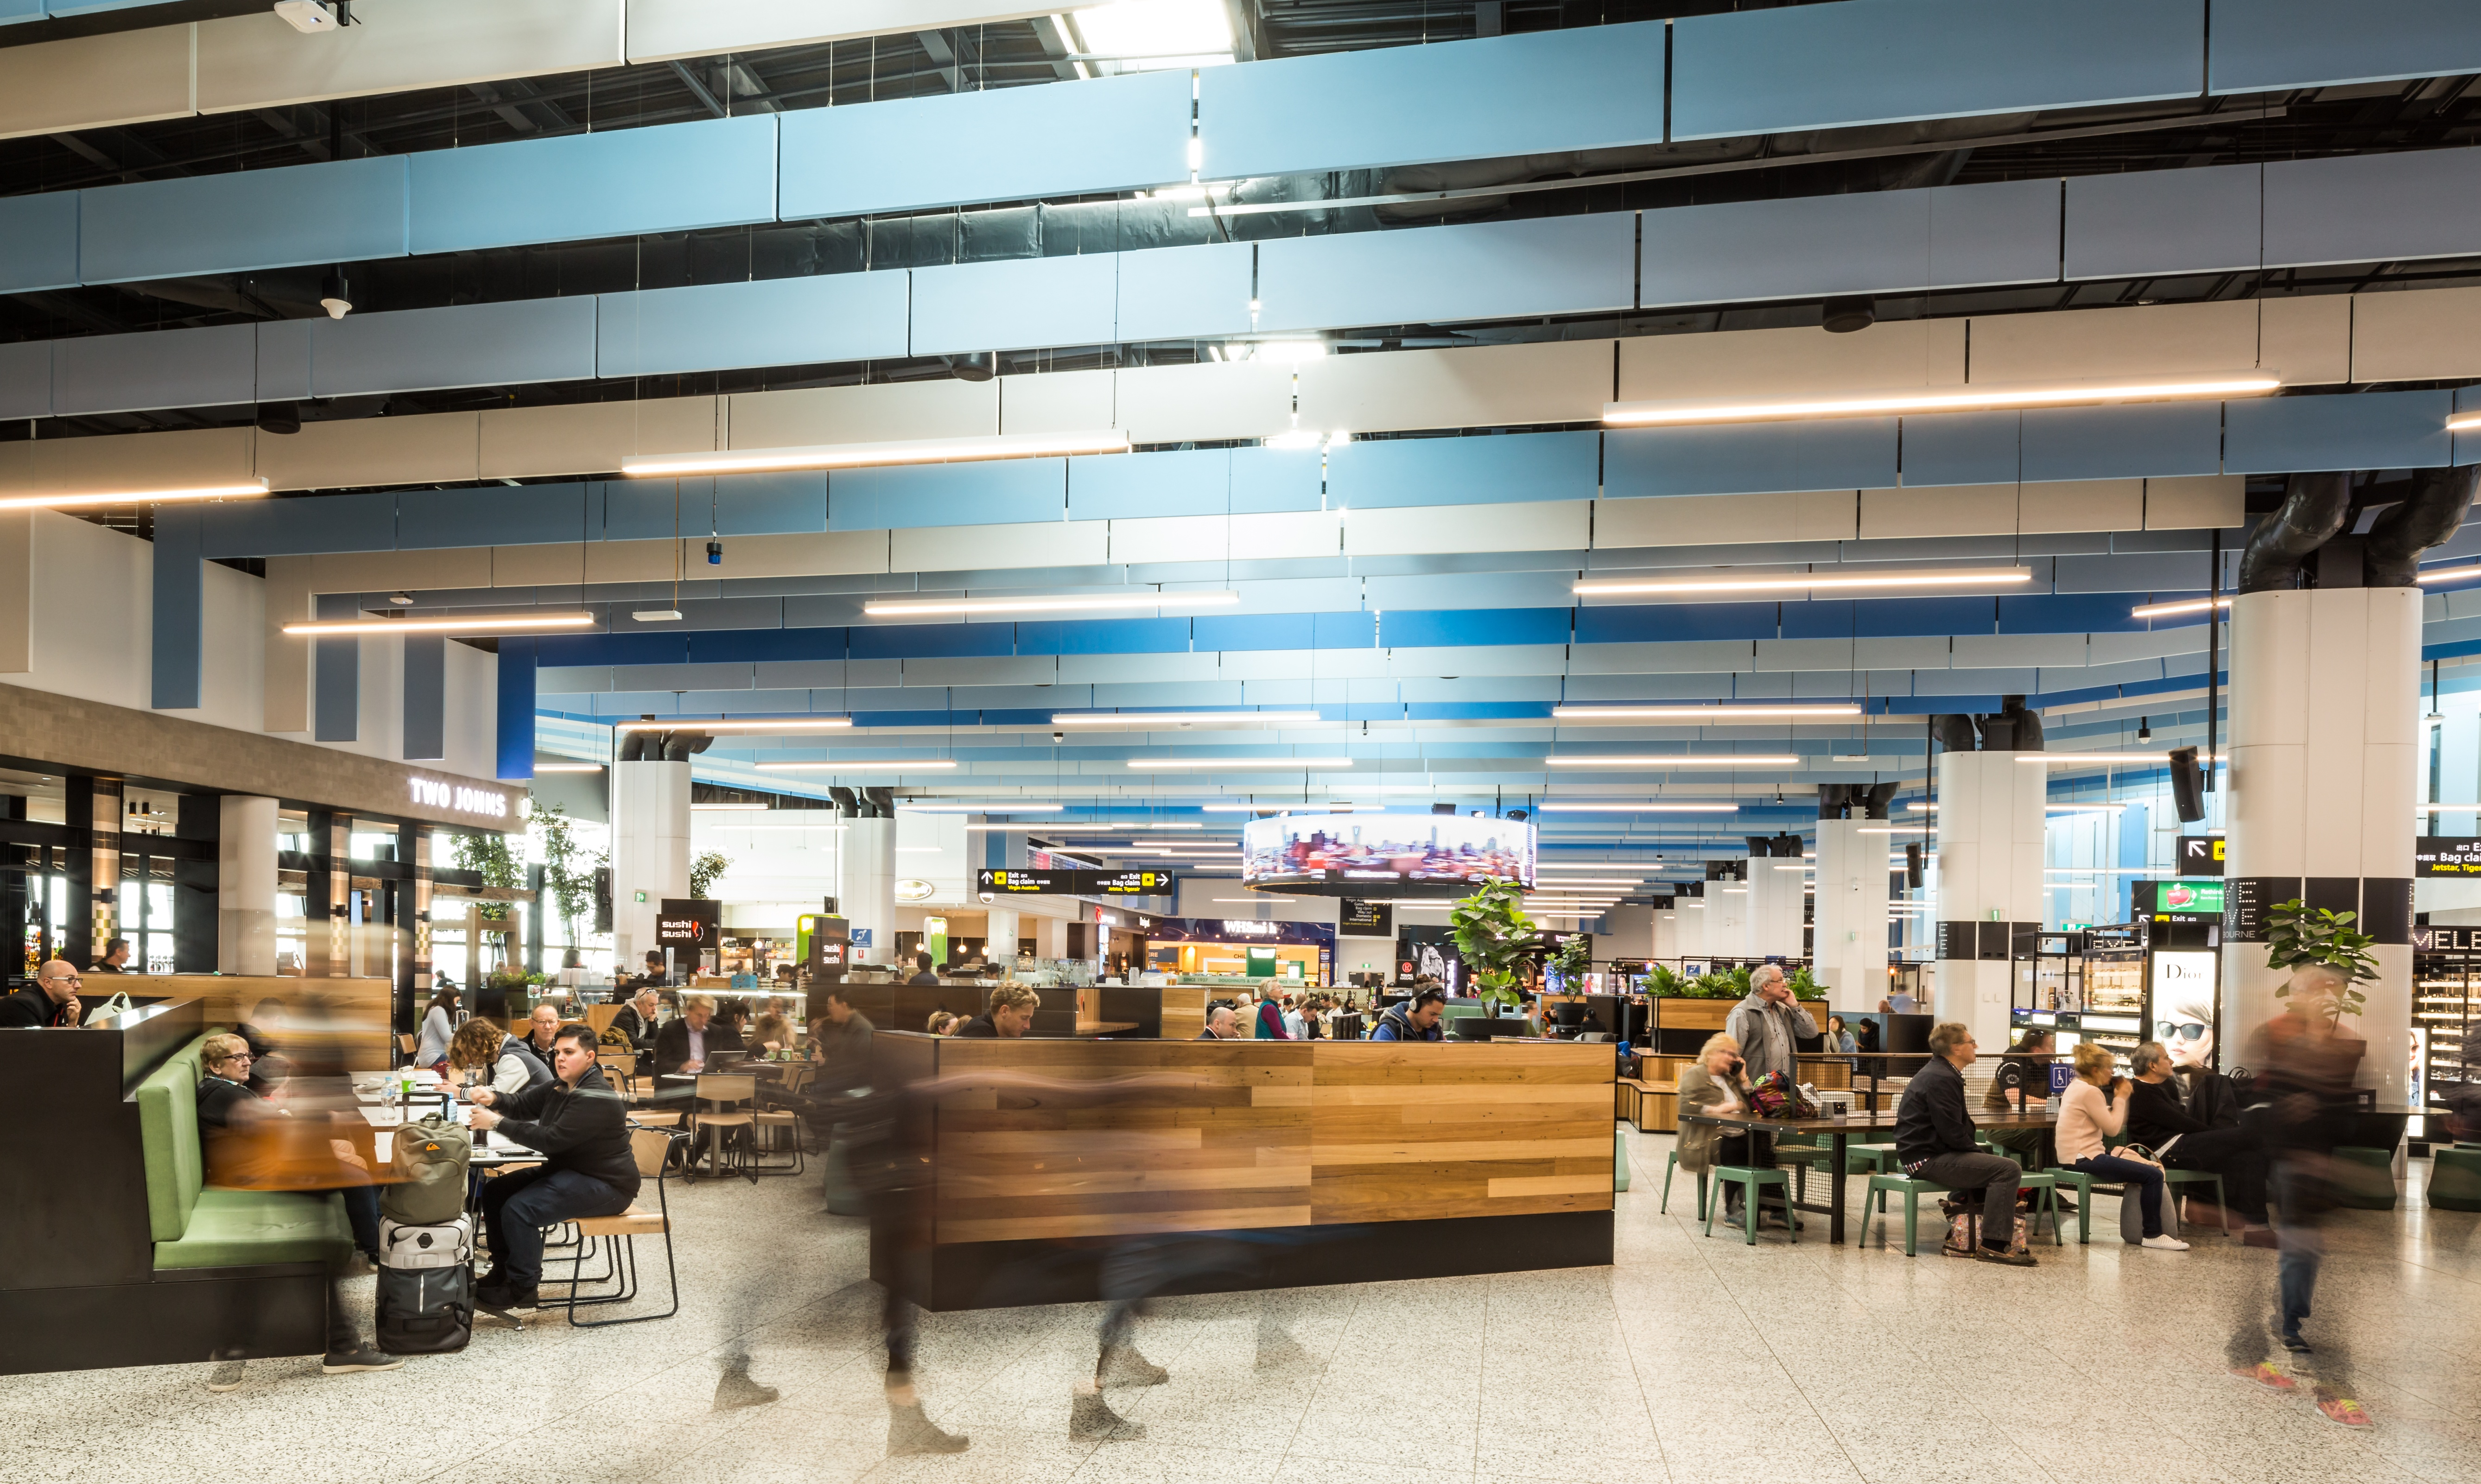 Real-time data delivers a smarter airport and world-class customer experience